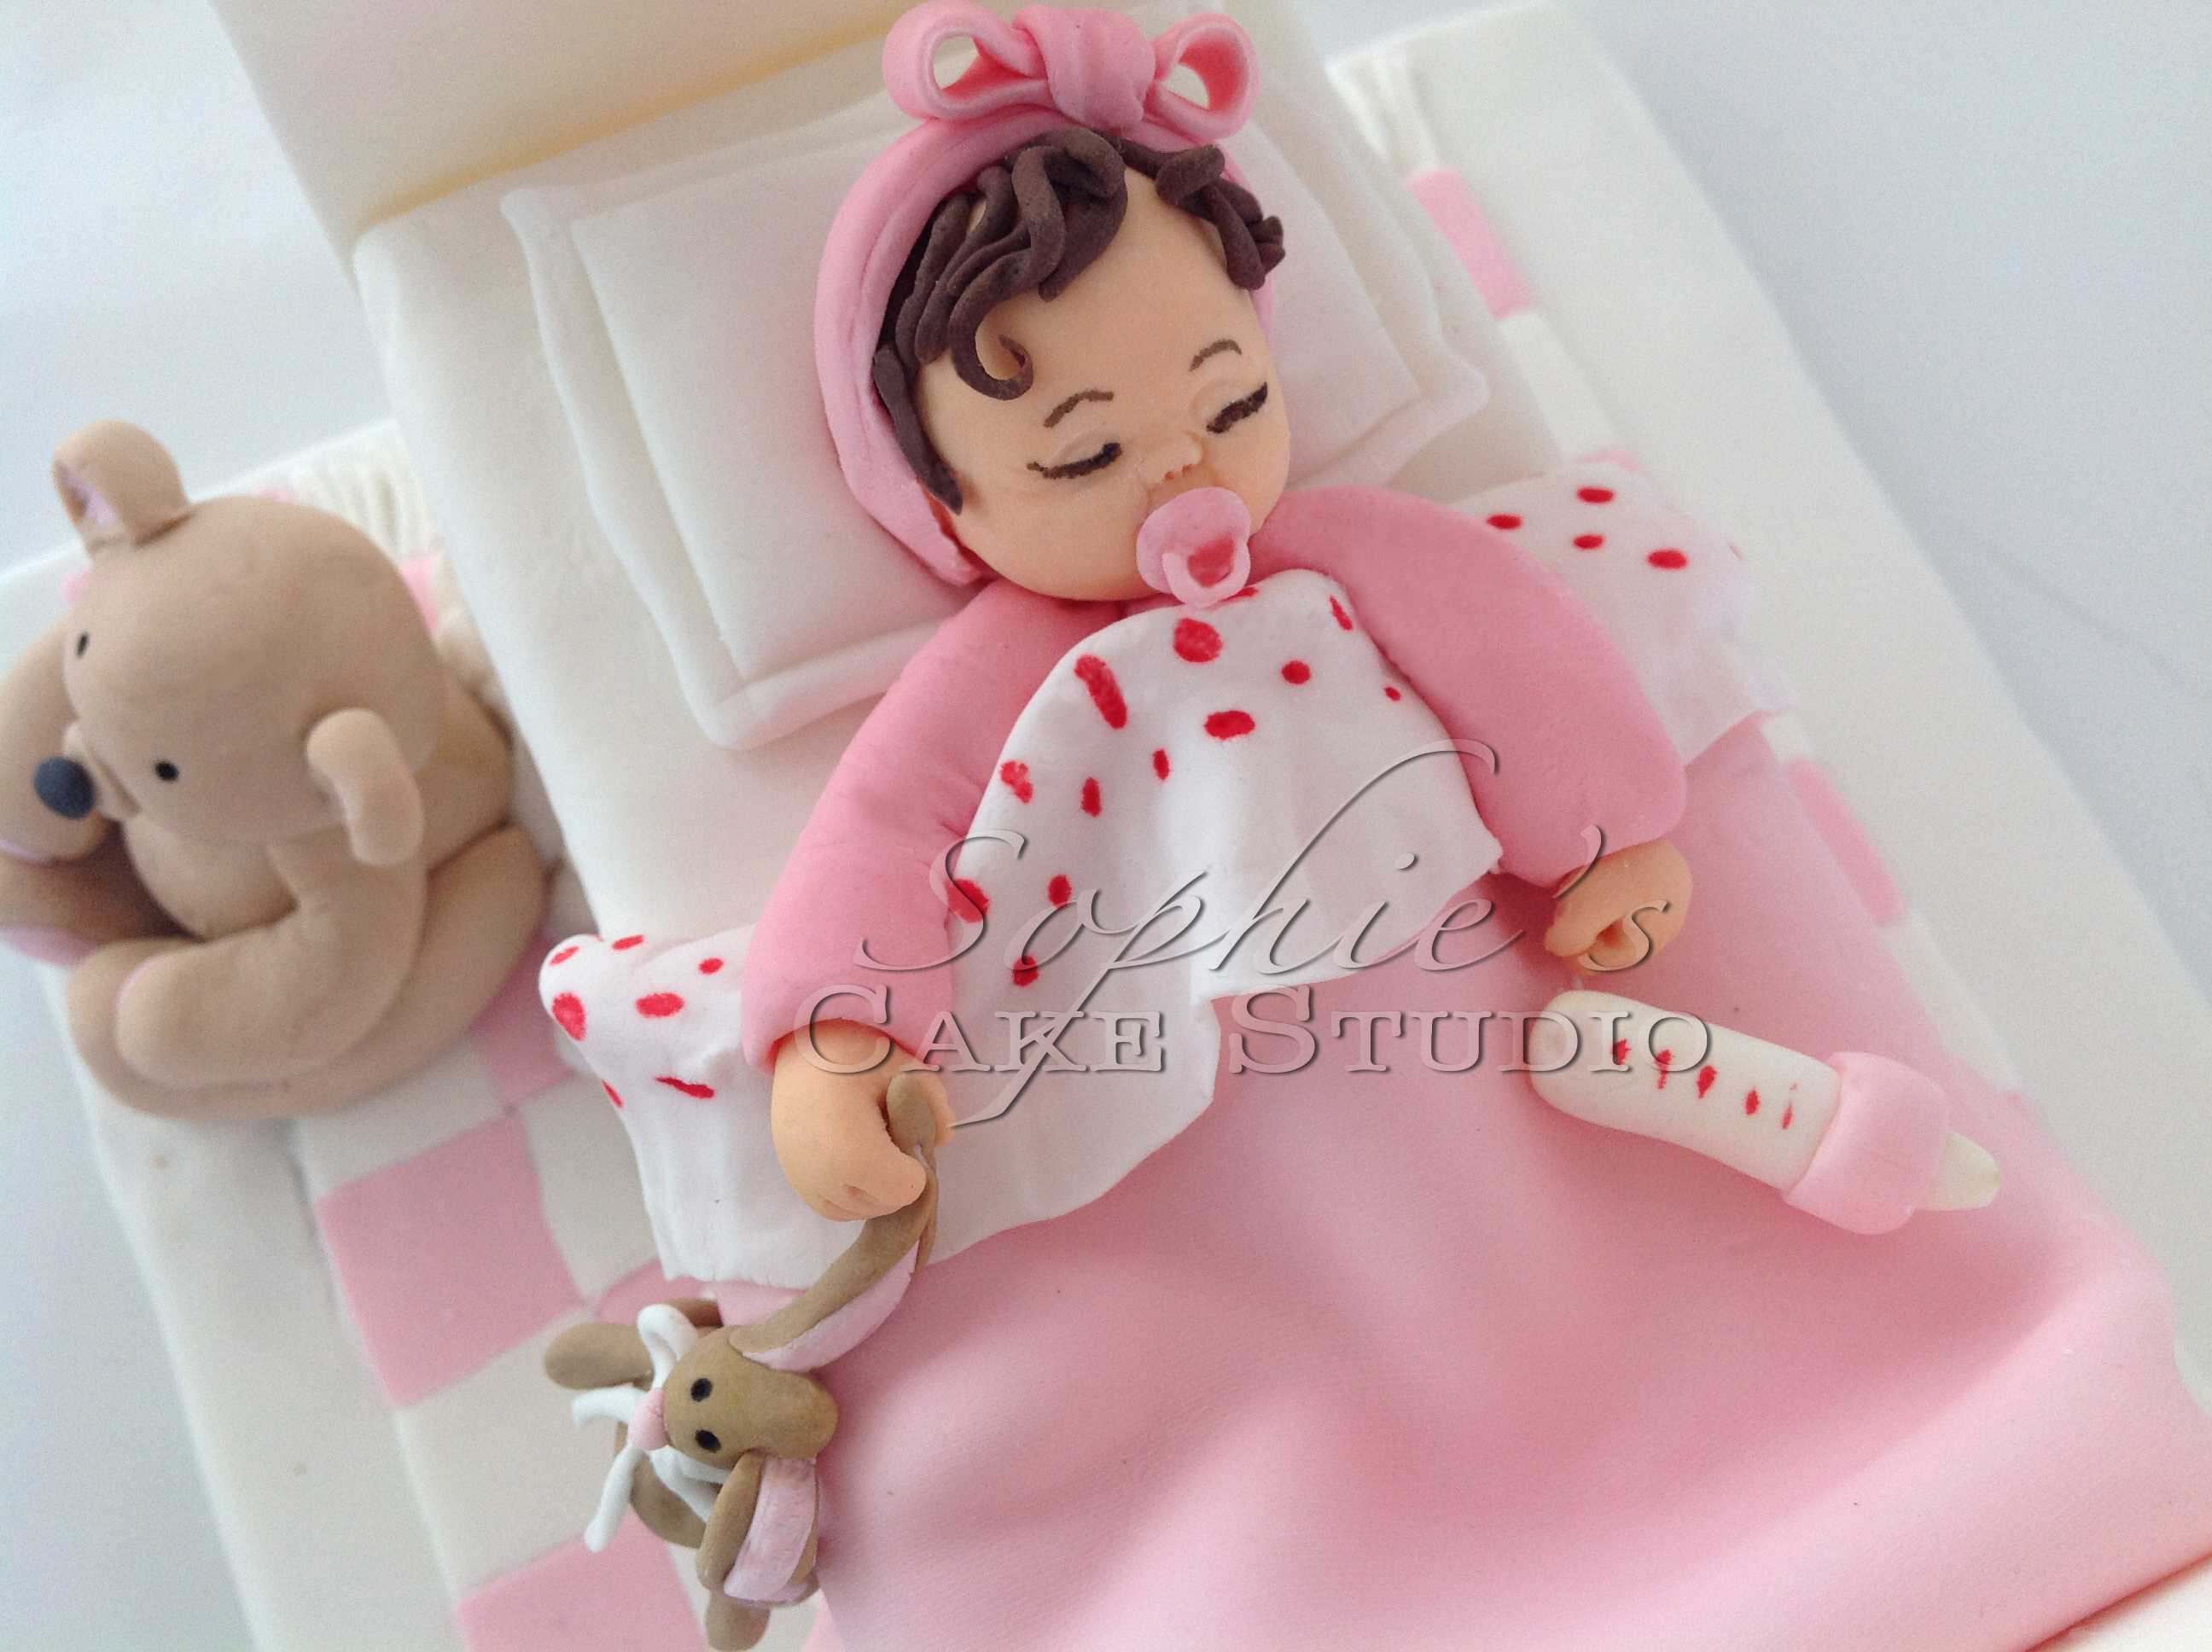 baby bed cake topper (detail)